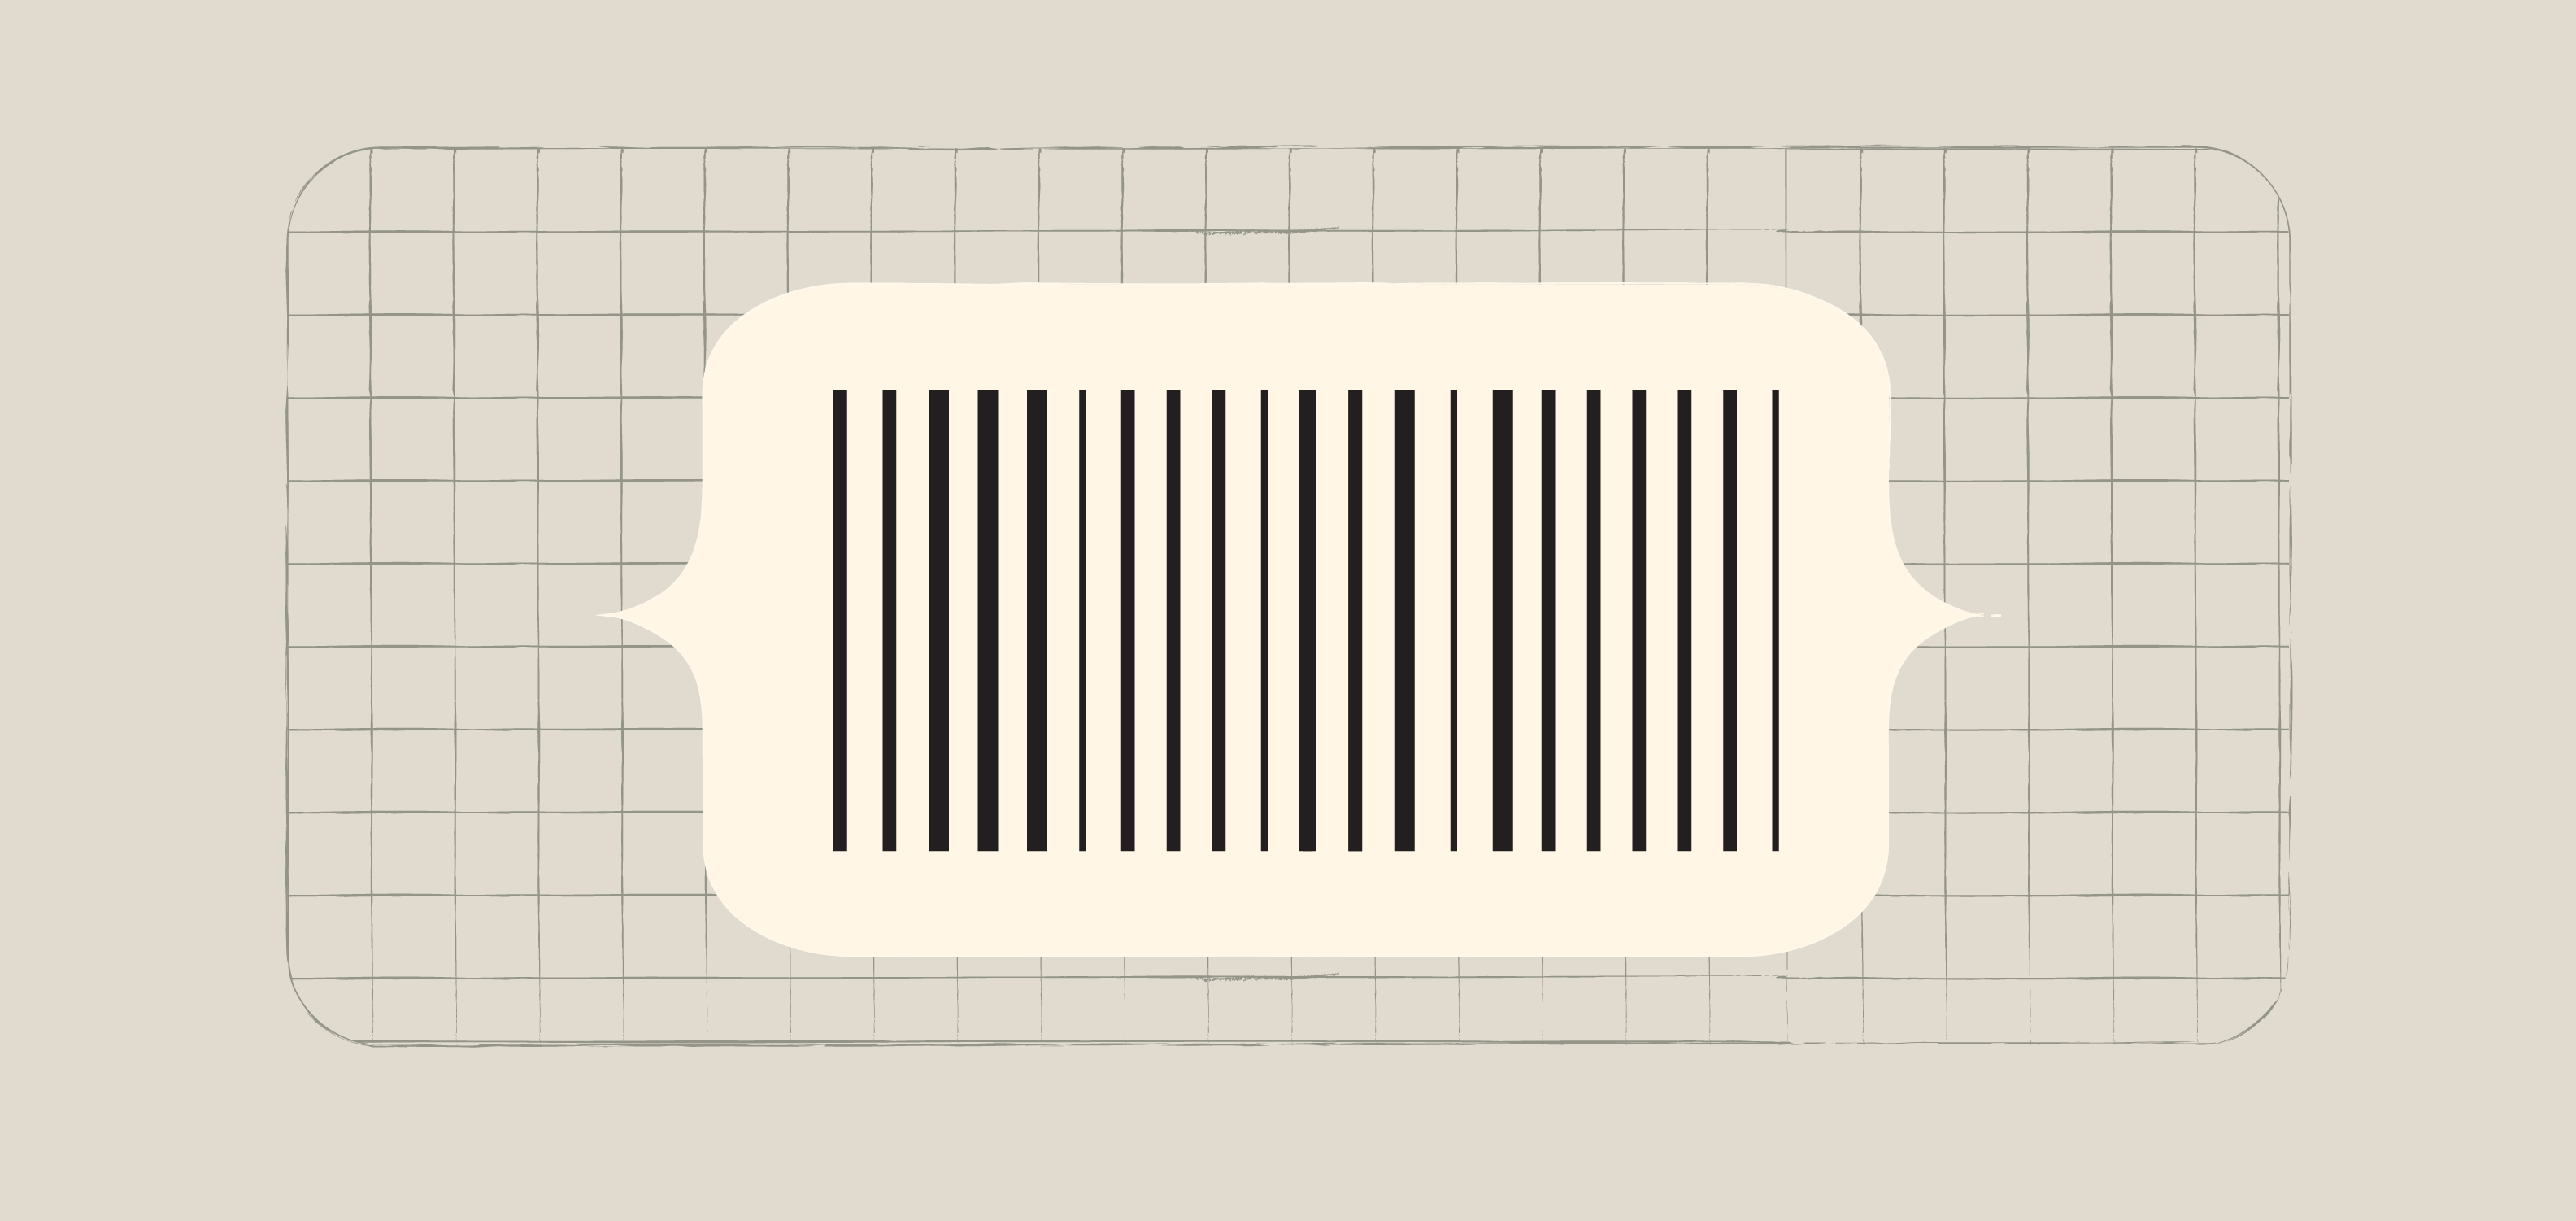 Barcode Scanning - Material Design